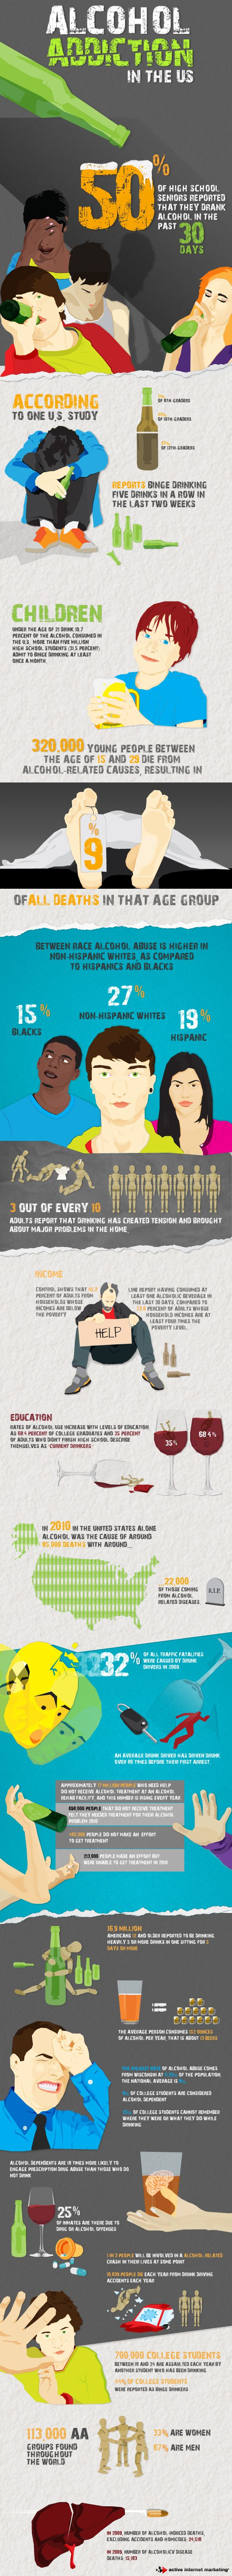 #Alcohol Addiction In The US #infographic - Who are they, and what can we do to help?